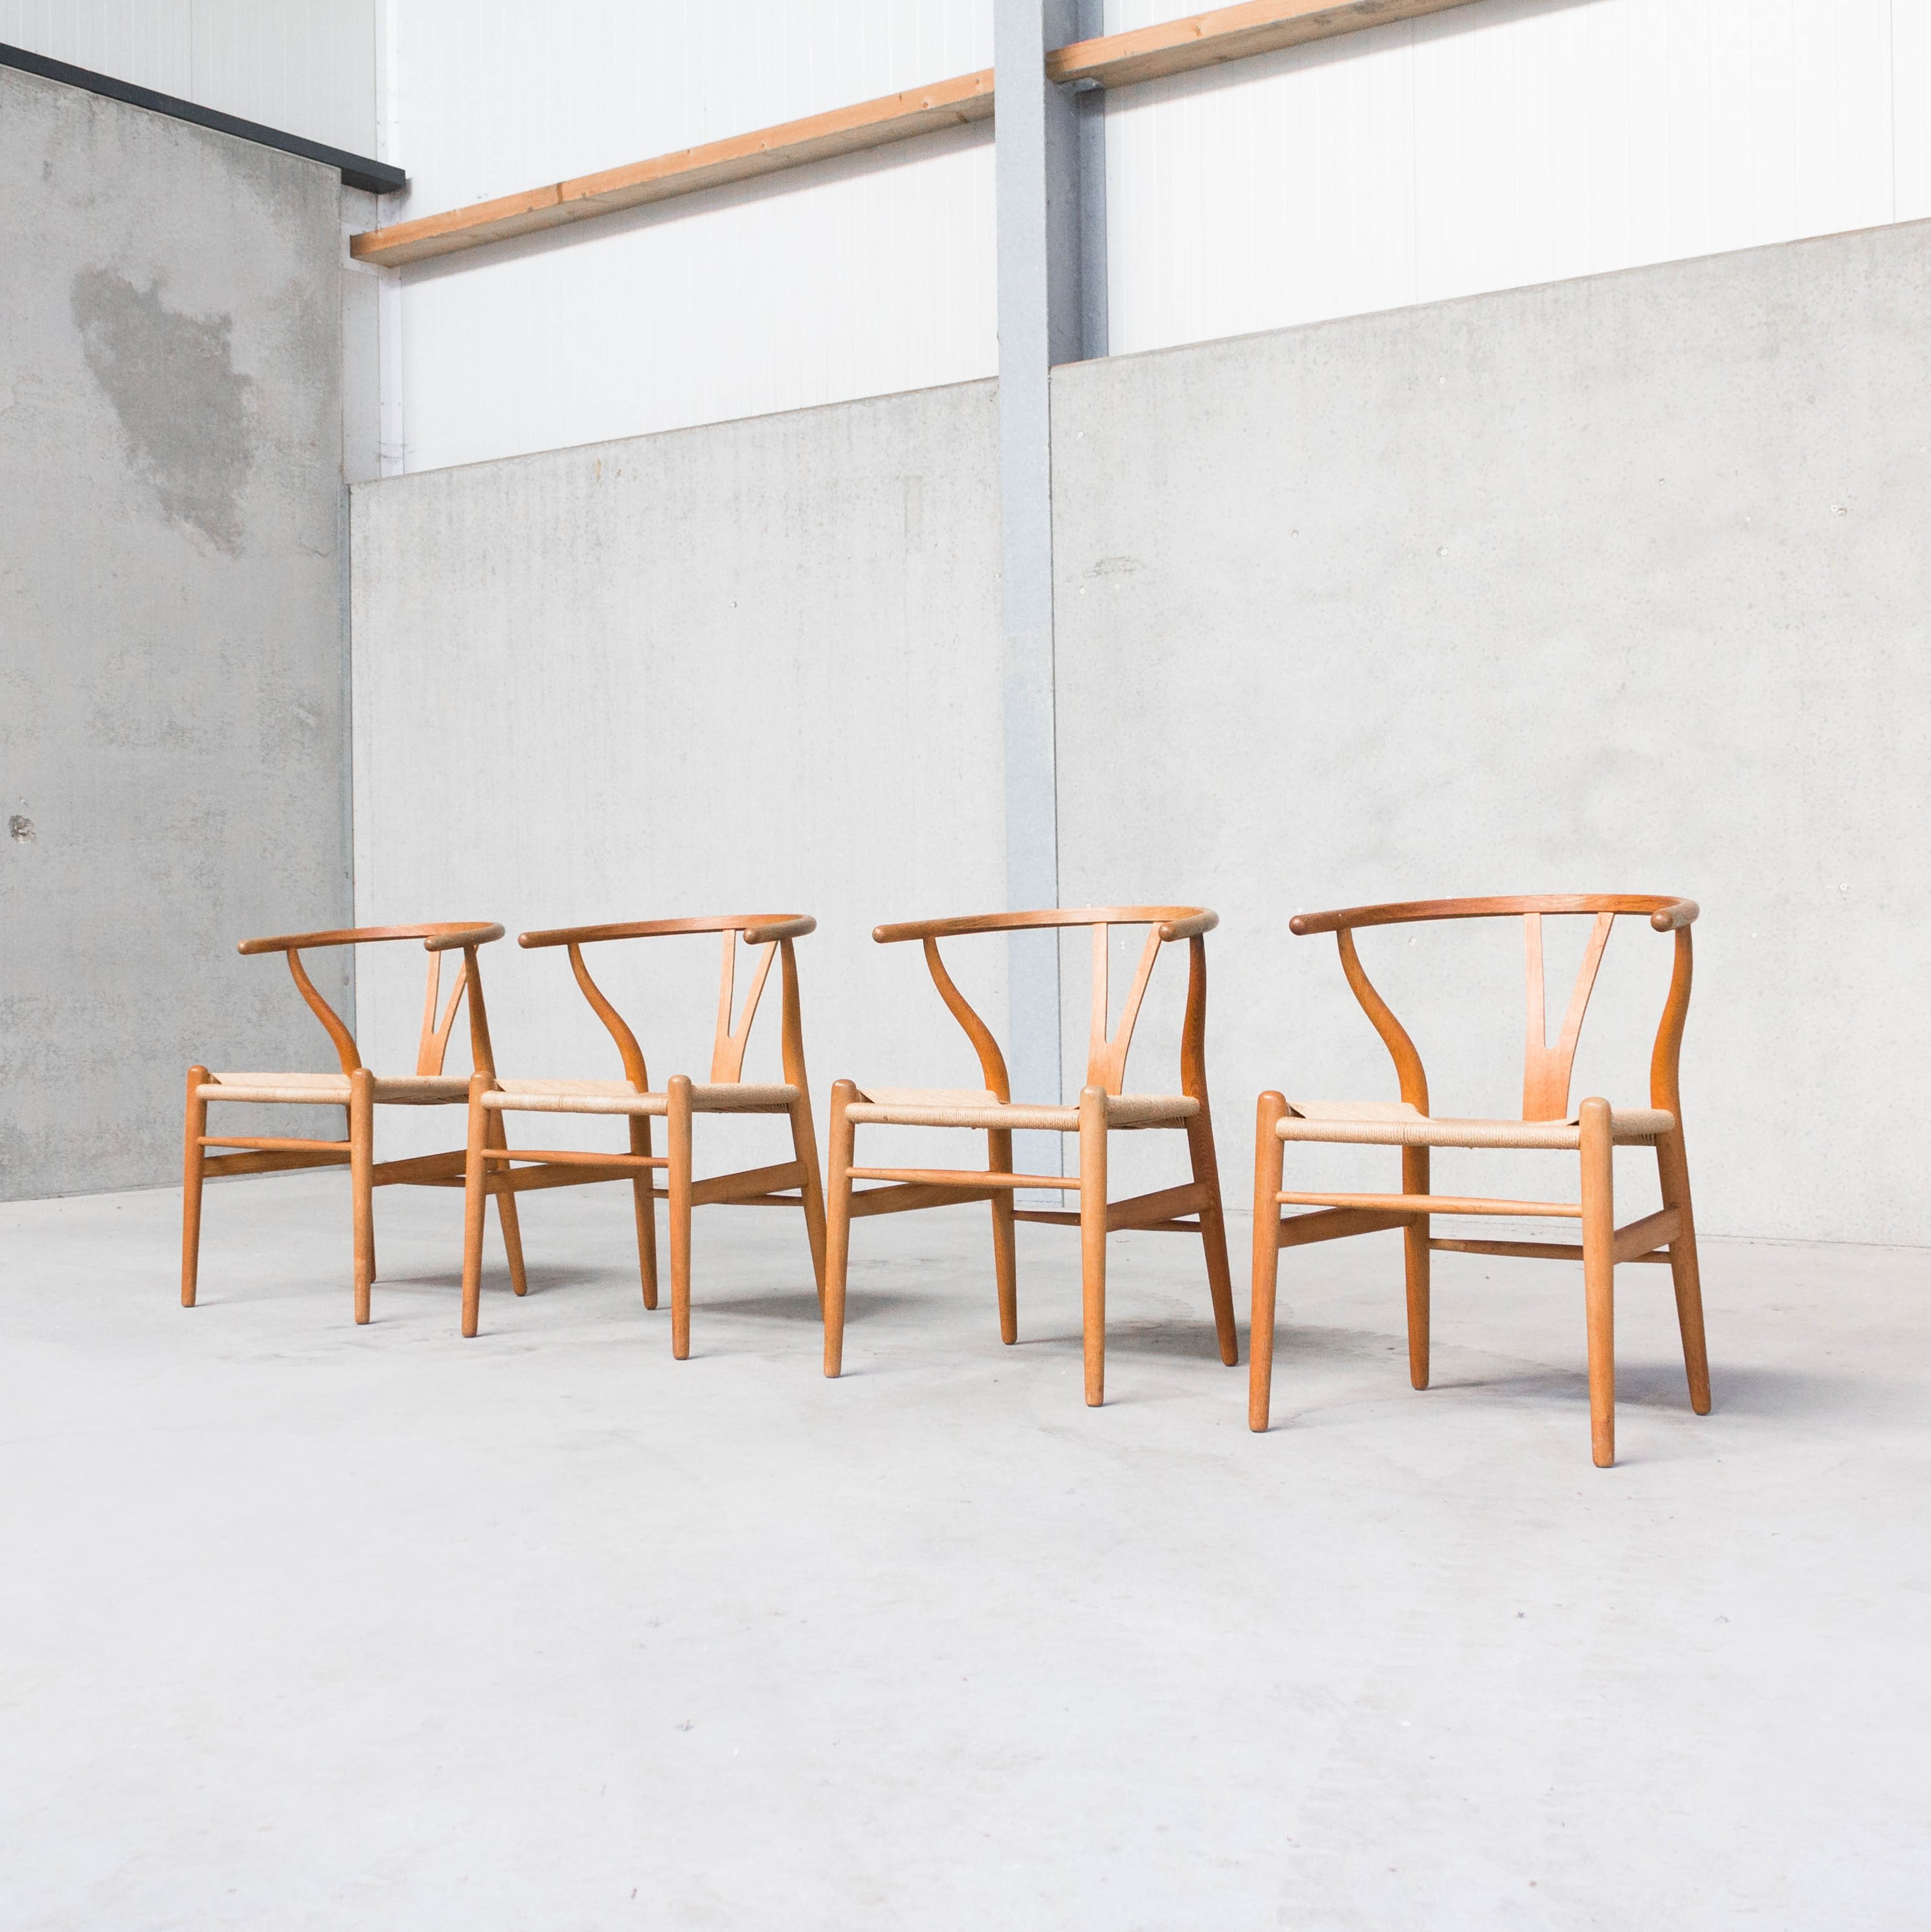 ch24 wishbone chairs by hans j wegner for carl hansen son 78188. Black Bedroom Furniture Sets. Home Design Ideas